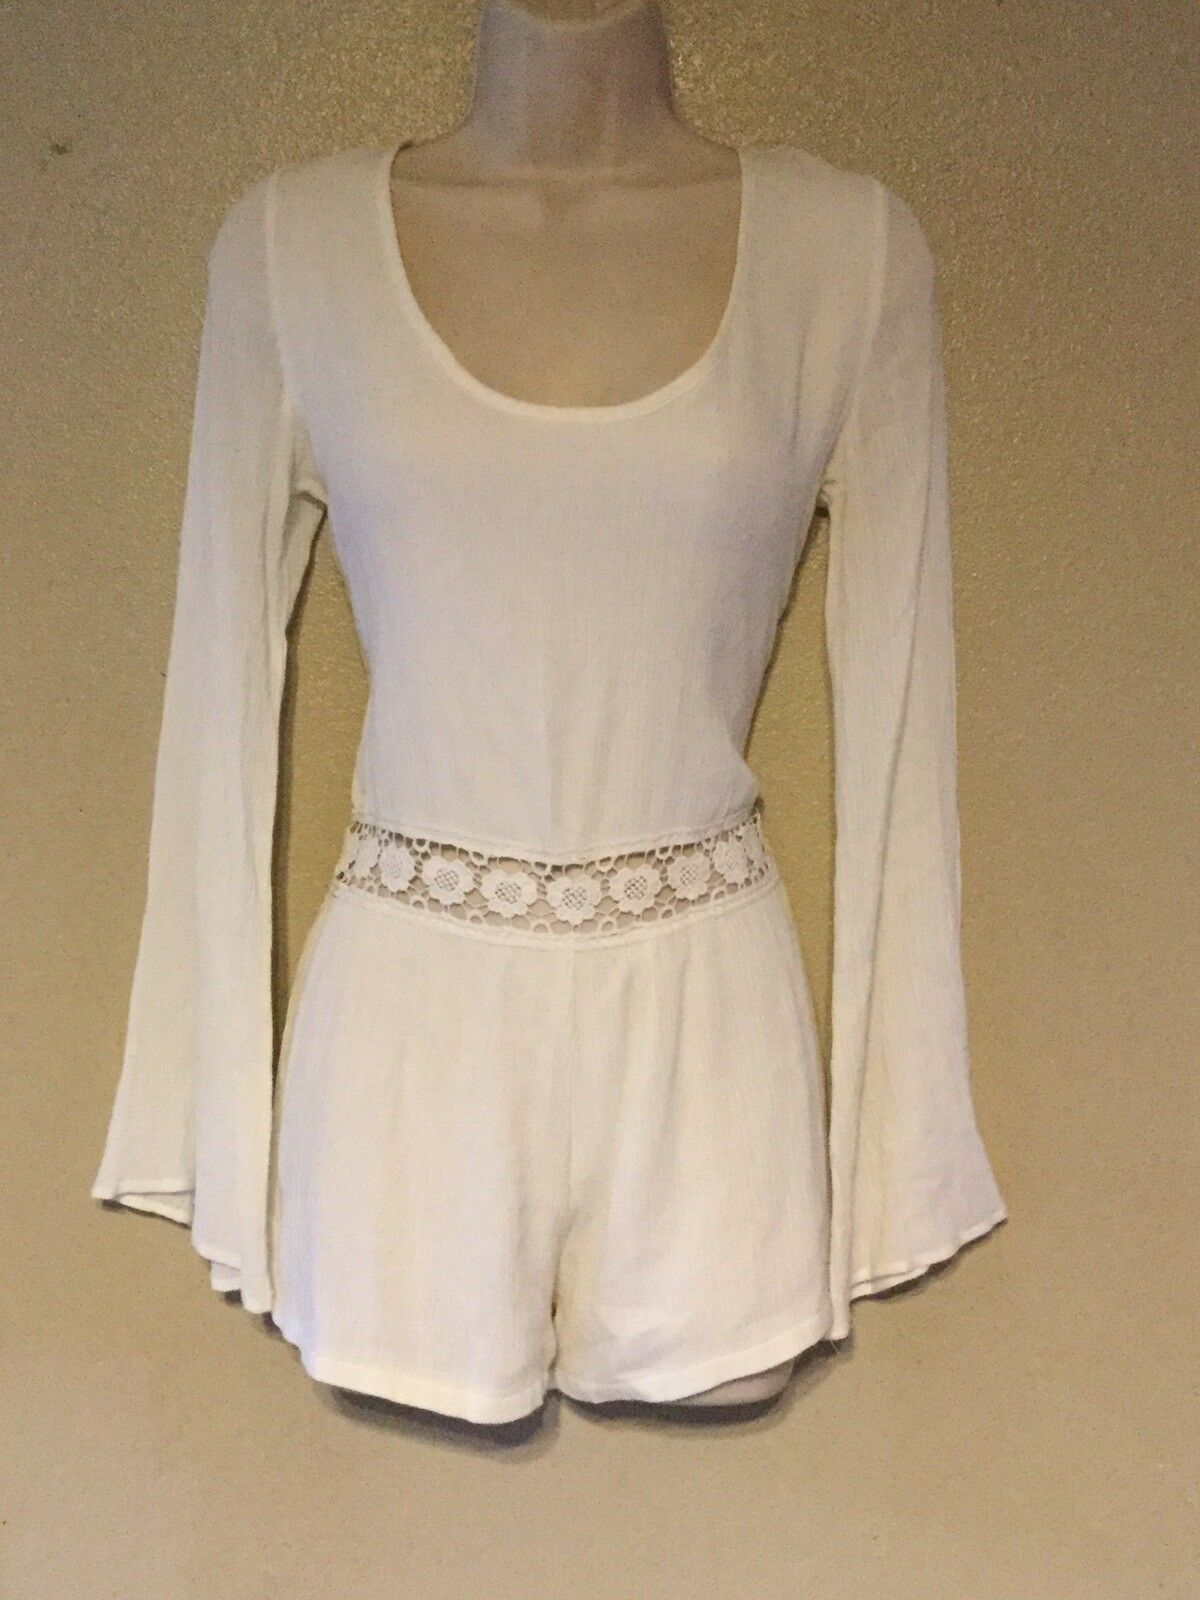 NWOT  LA Hearts romper outfit size small ivory Long sleeve crochet detail CUTE